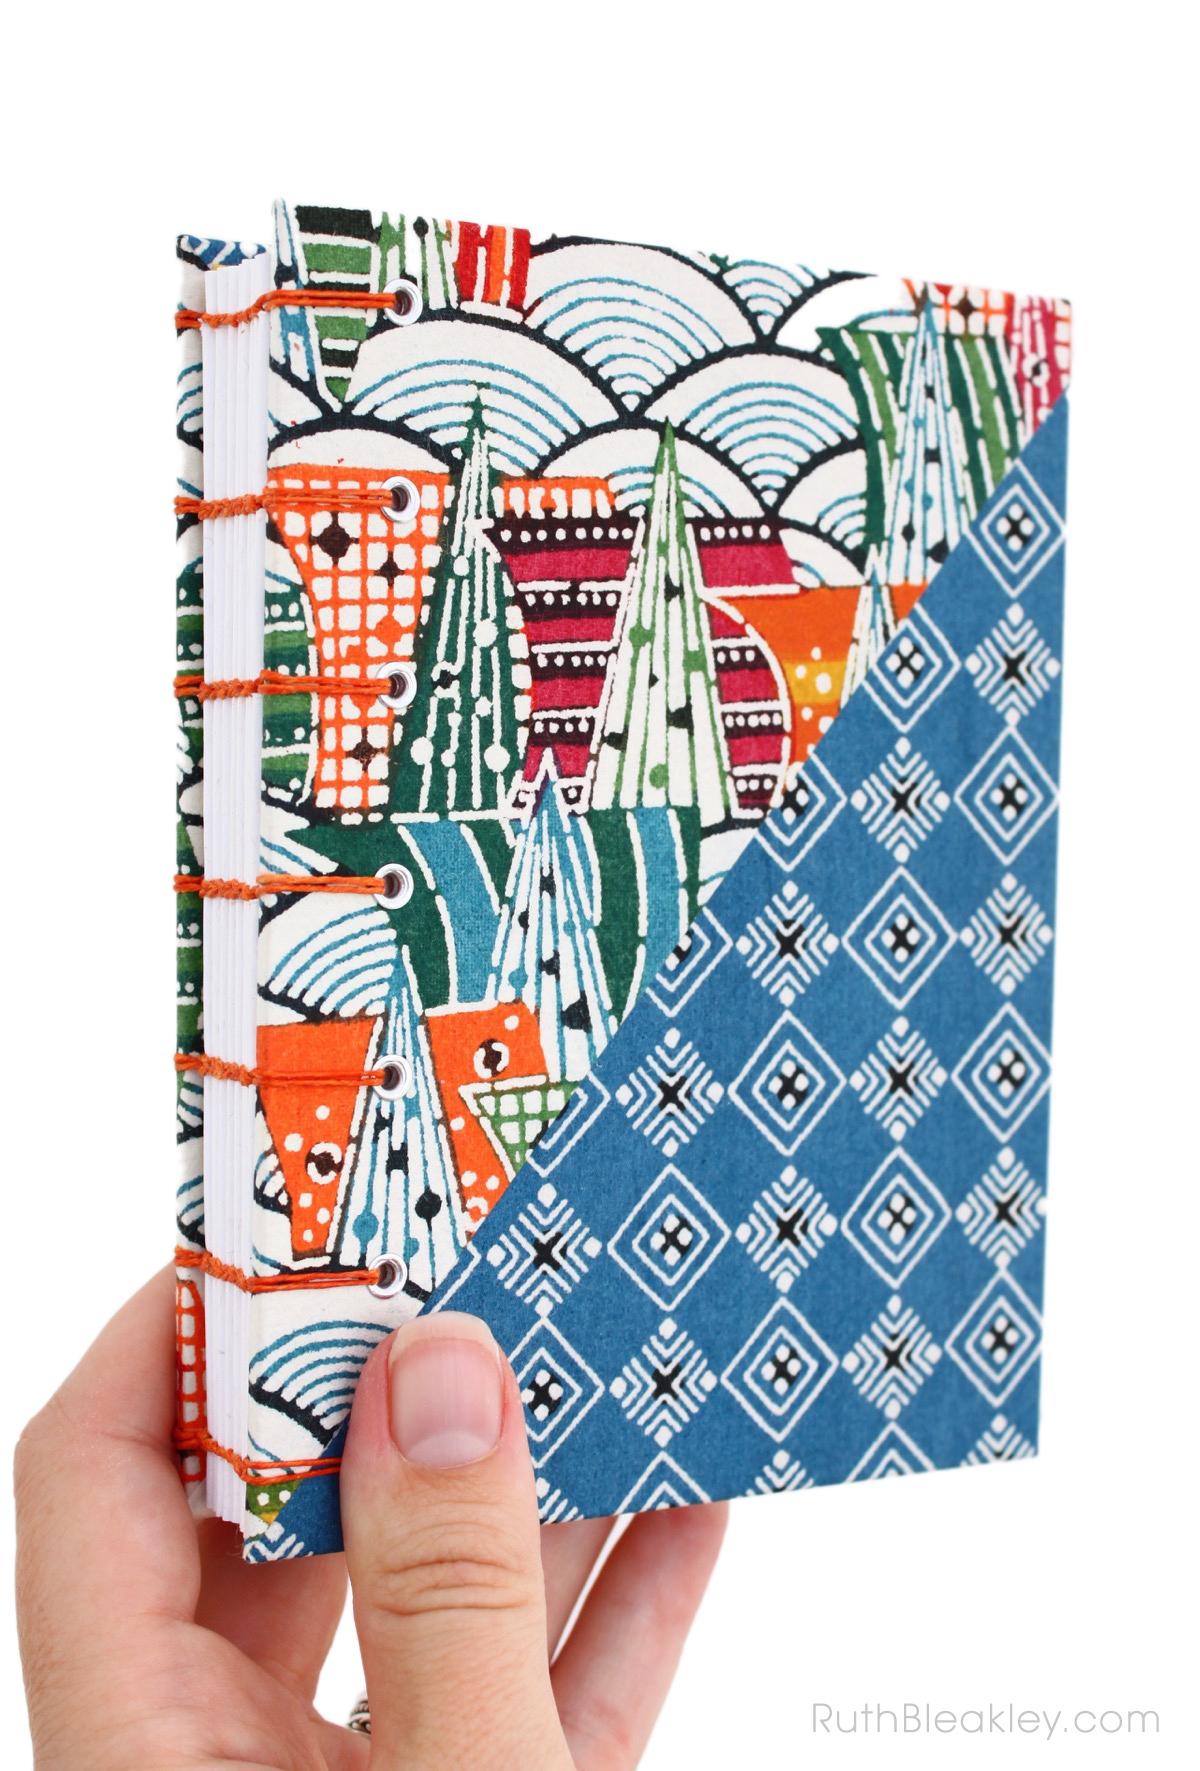 Hidden Cities Katazome Journal handmade by Ruth Bleakley